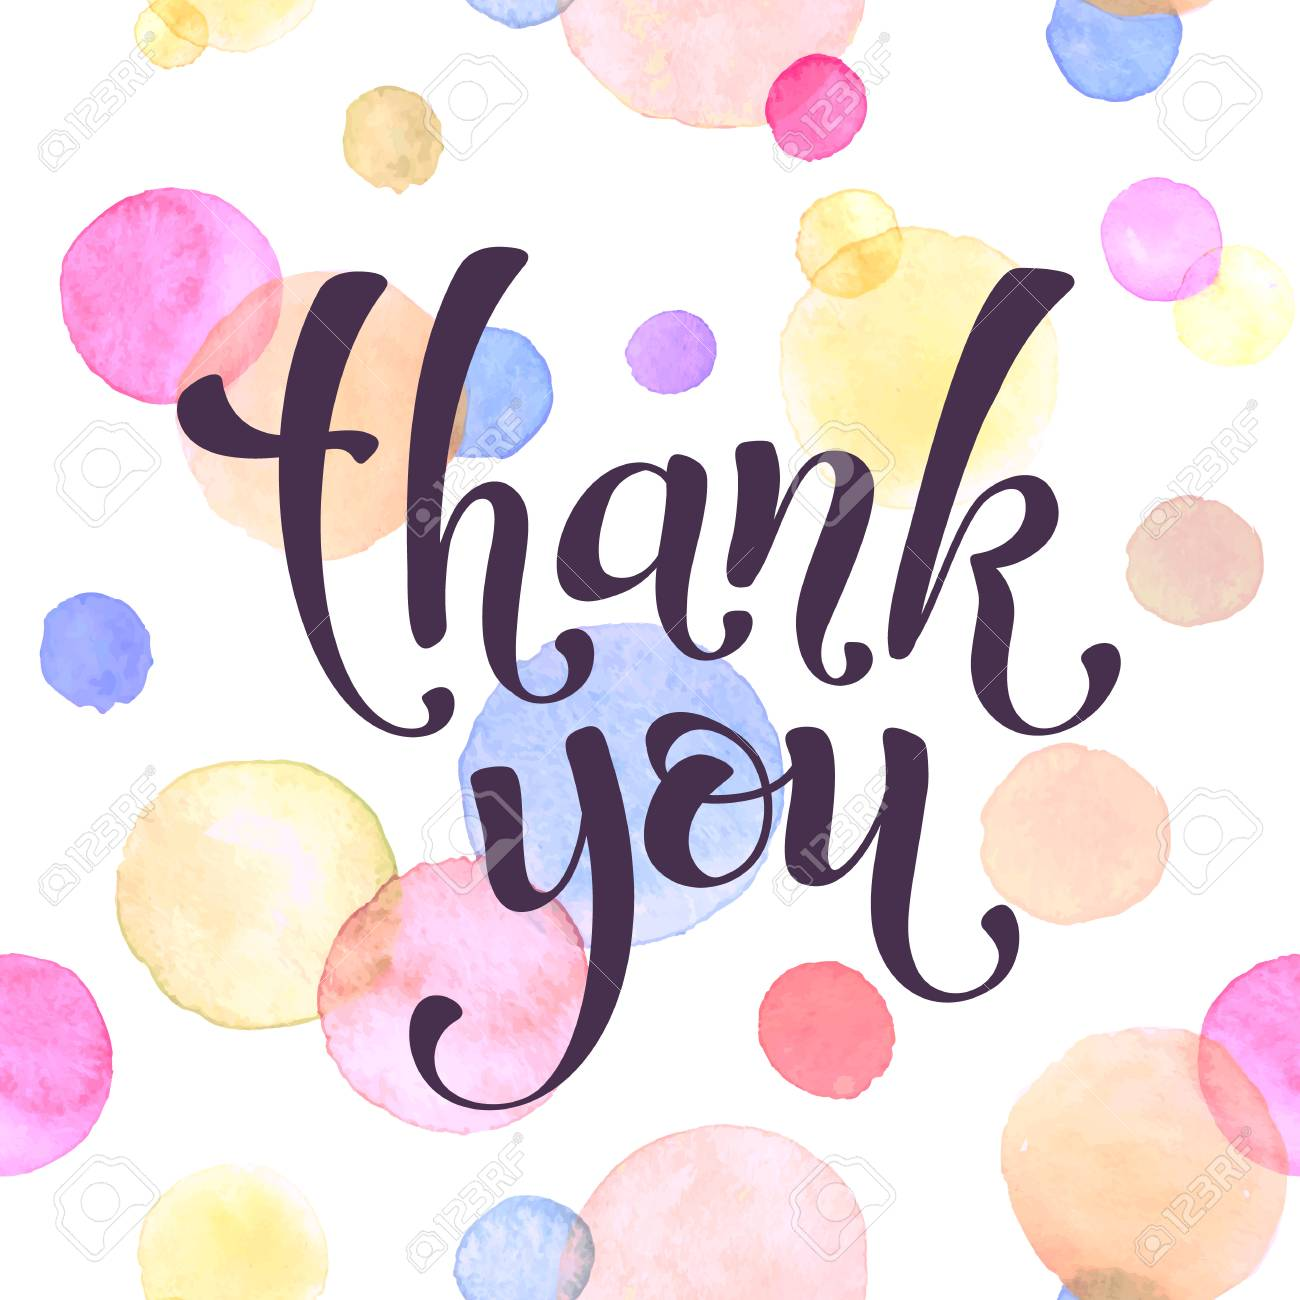 thank you lettering with watercolor spots on background modern